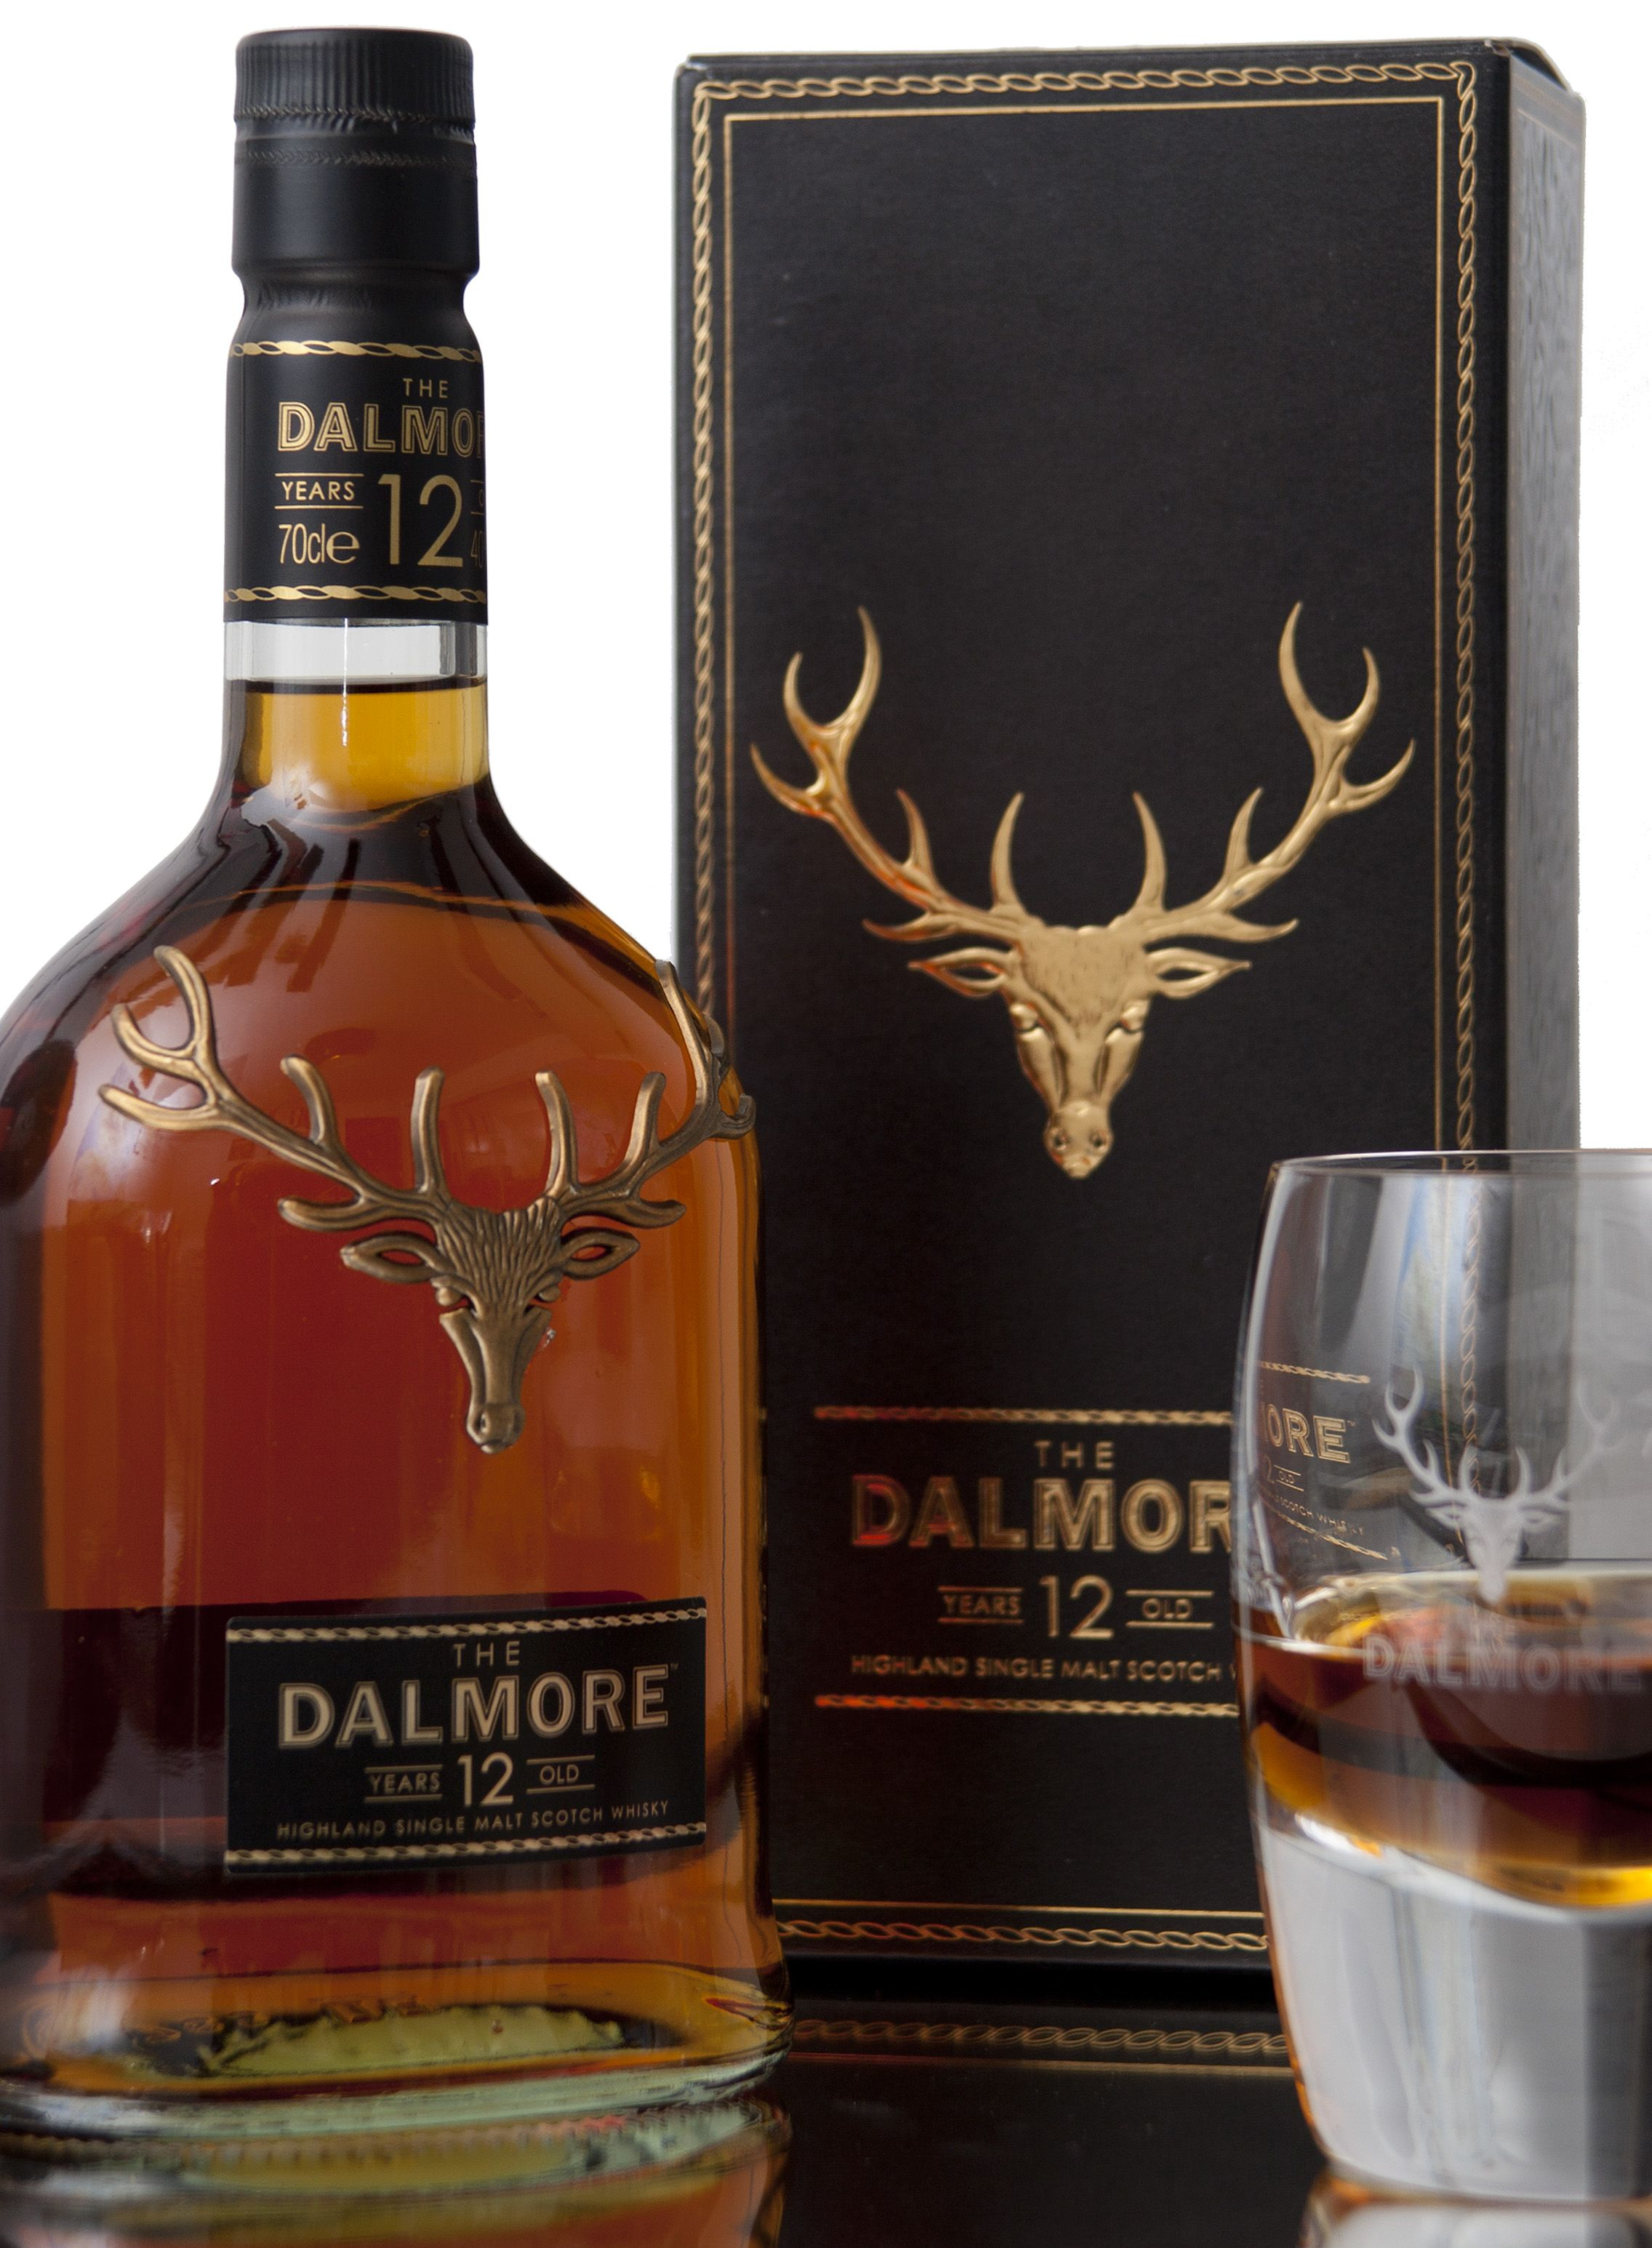 ♔ Dalmore 12 year old whisky